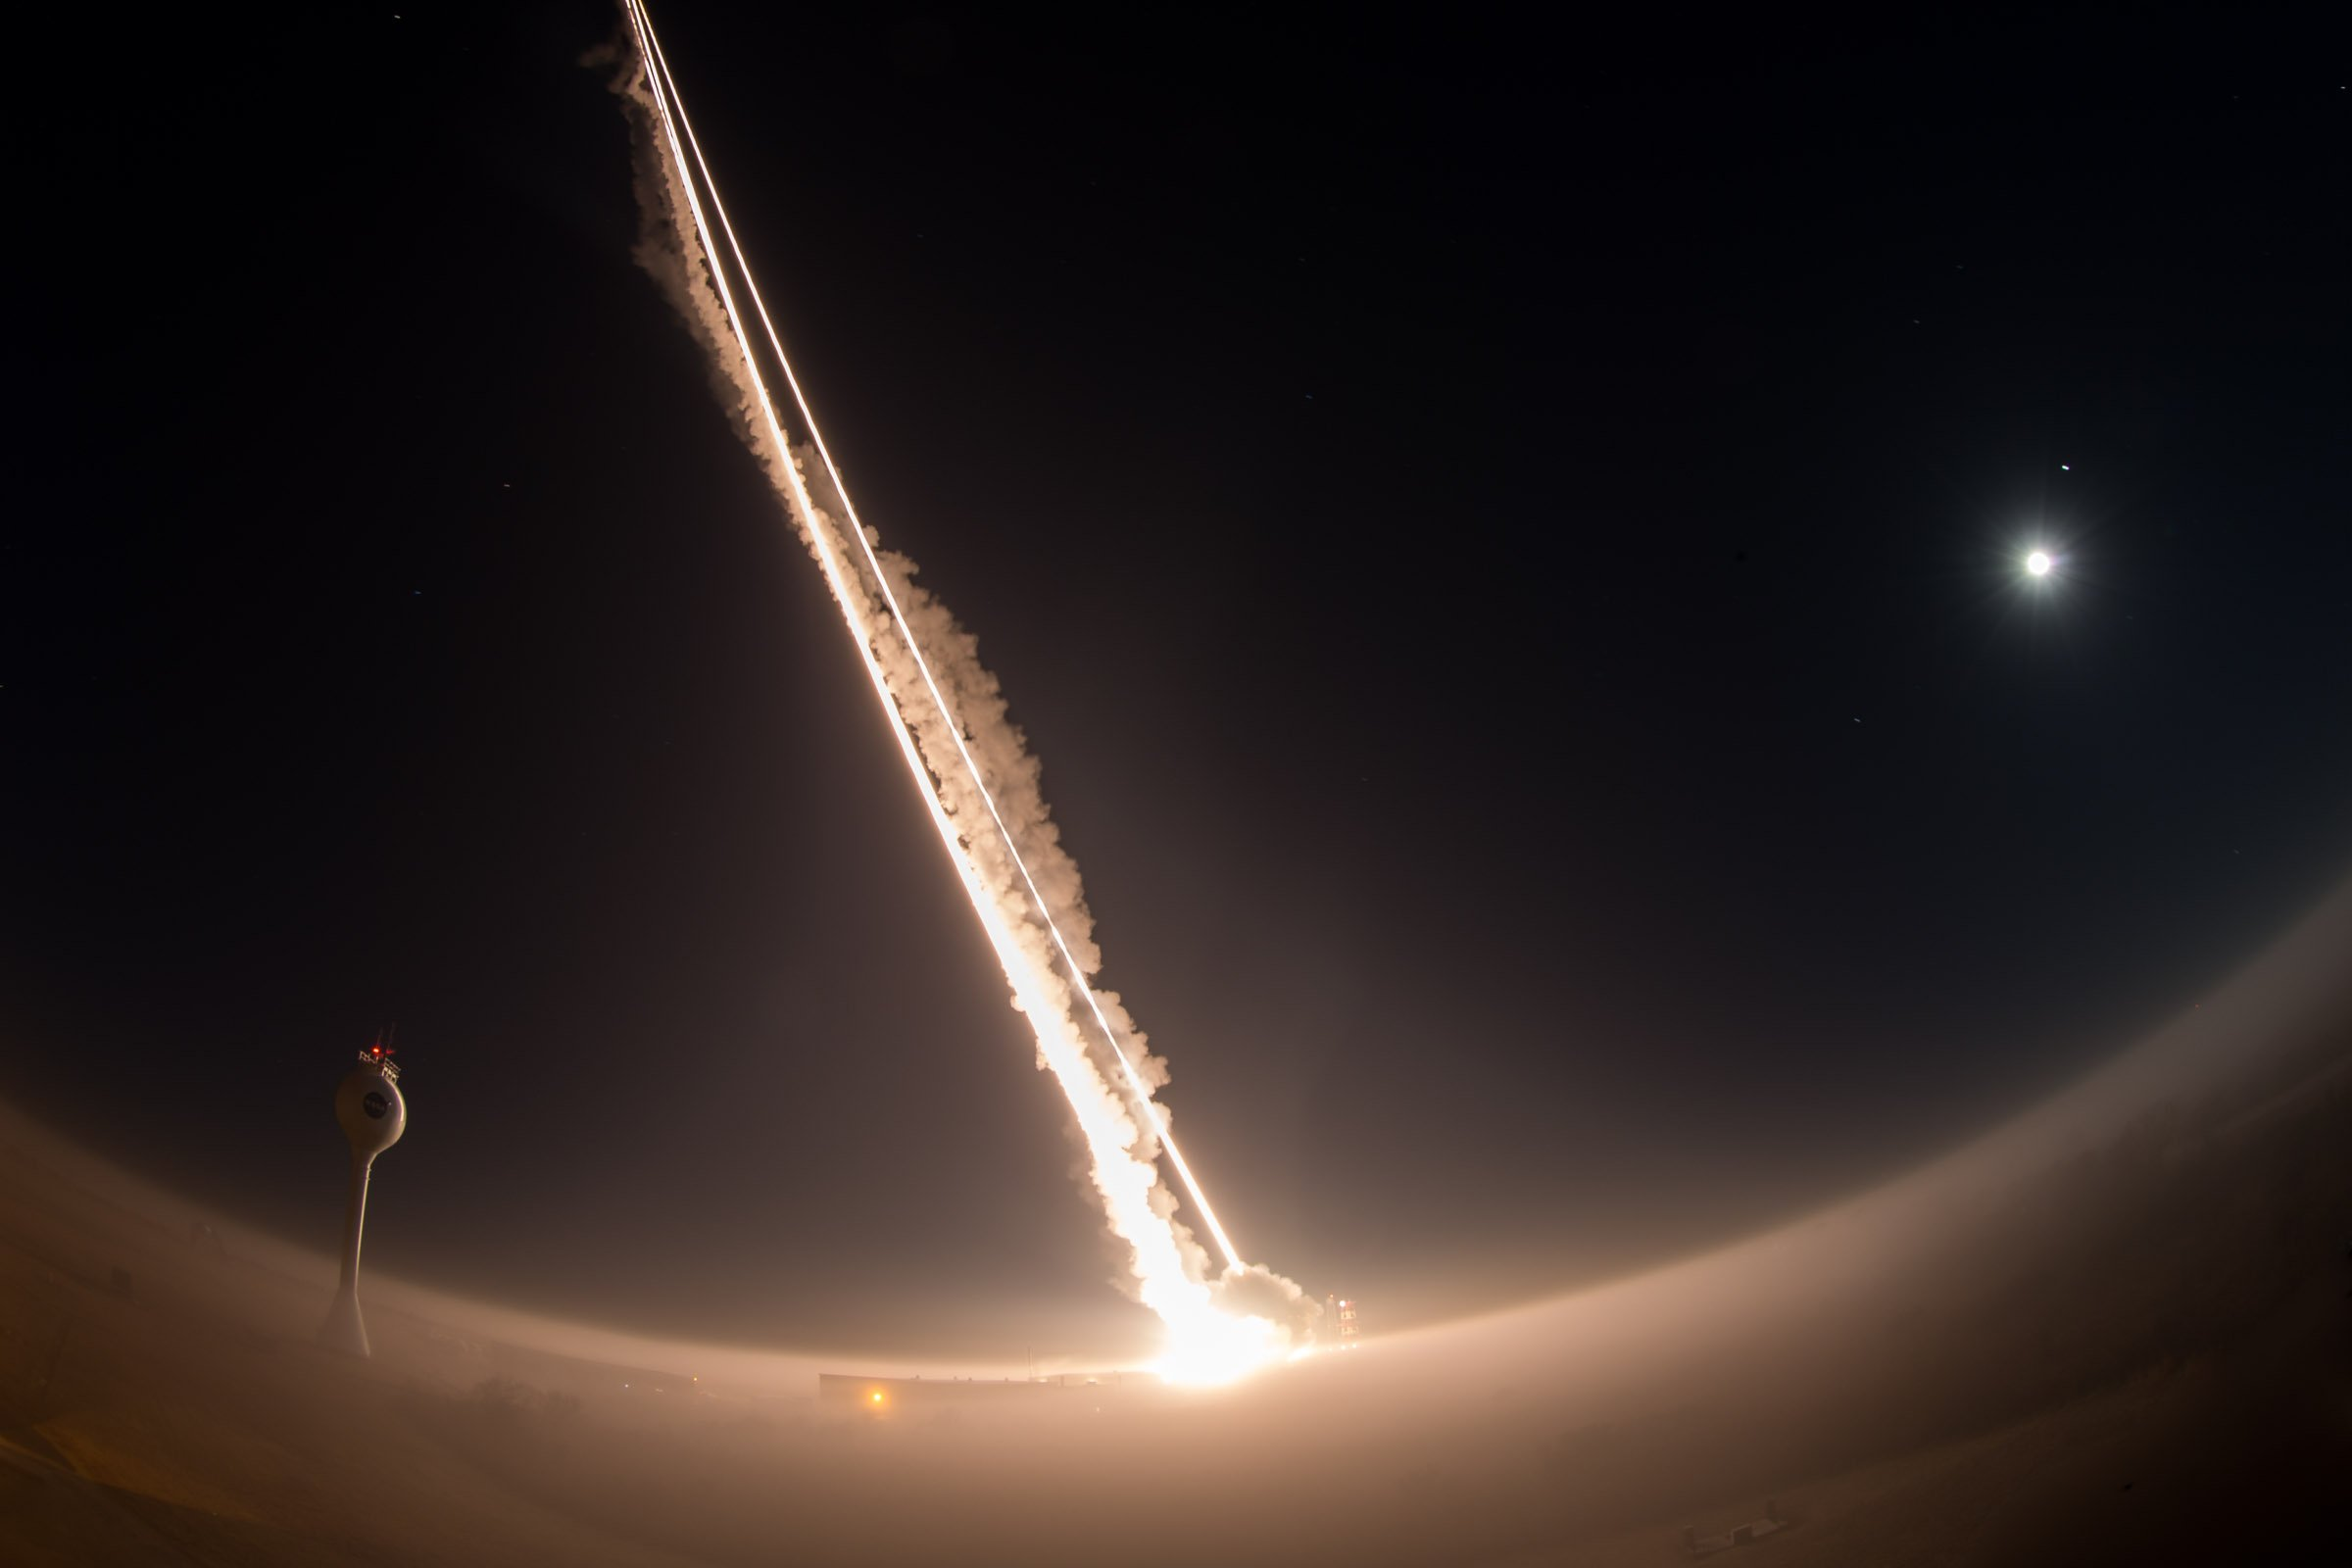 Three ARAV-A targets are launched from NASA's Wallops Flight Facility as part of a ballistic missile defense test. US Navy Photo